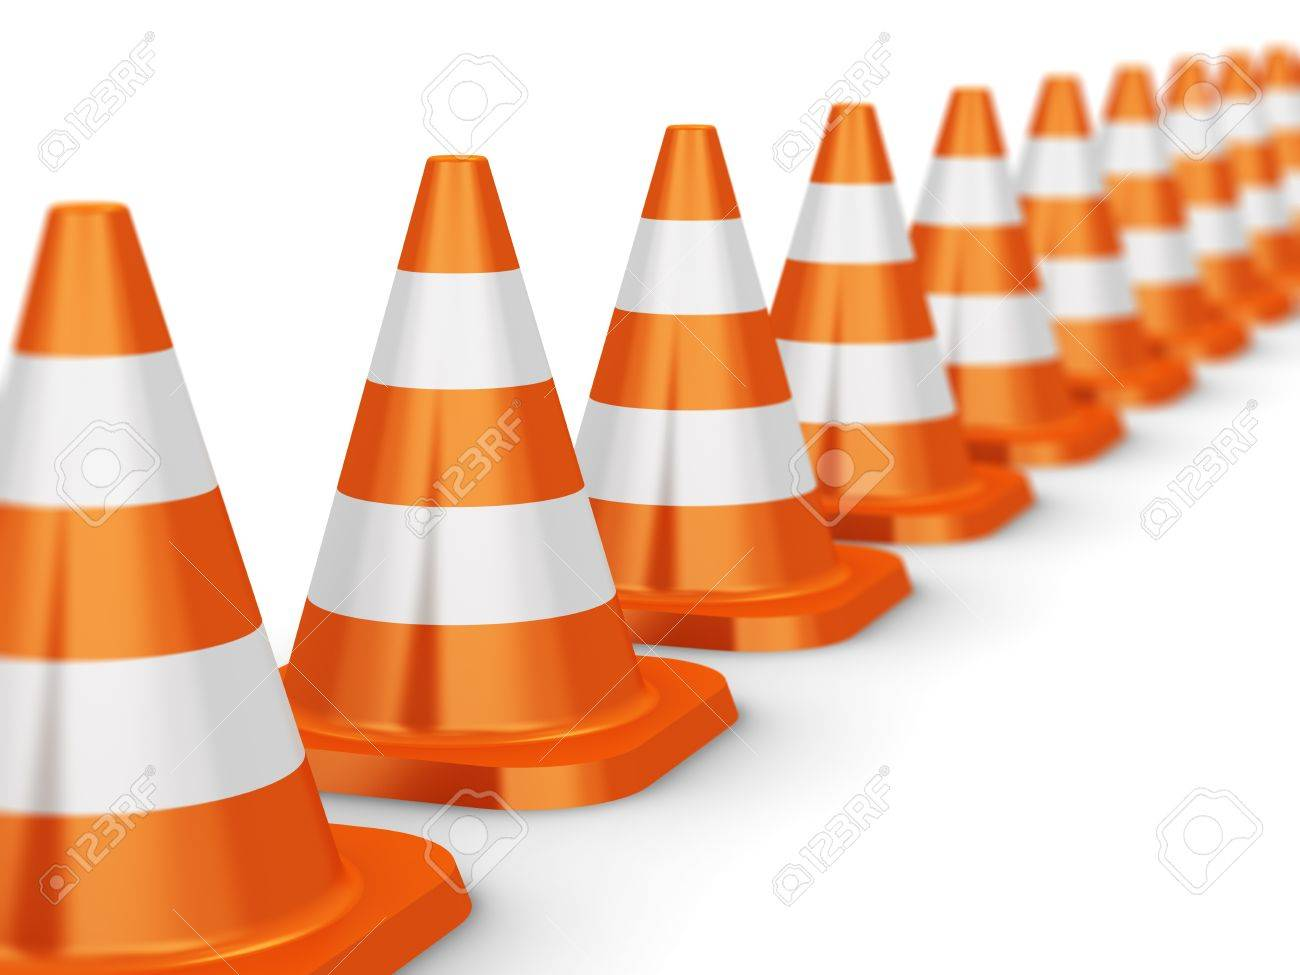 Row of orange traffic cones isolated on white background with selective focus effect Stock Photo - 21702993